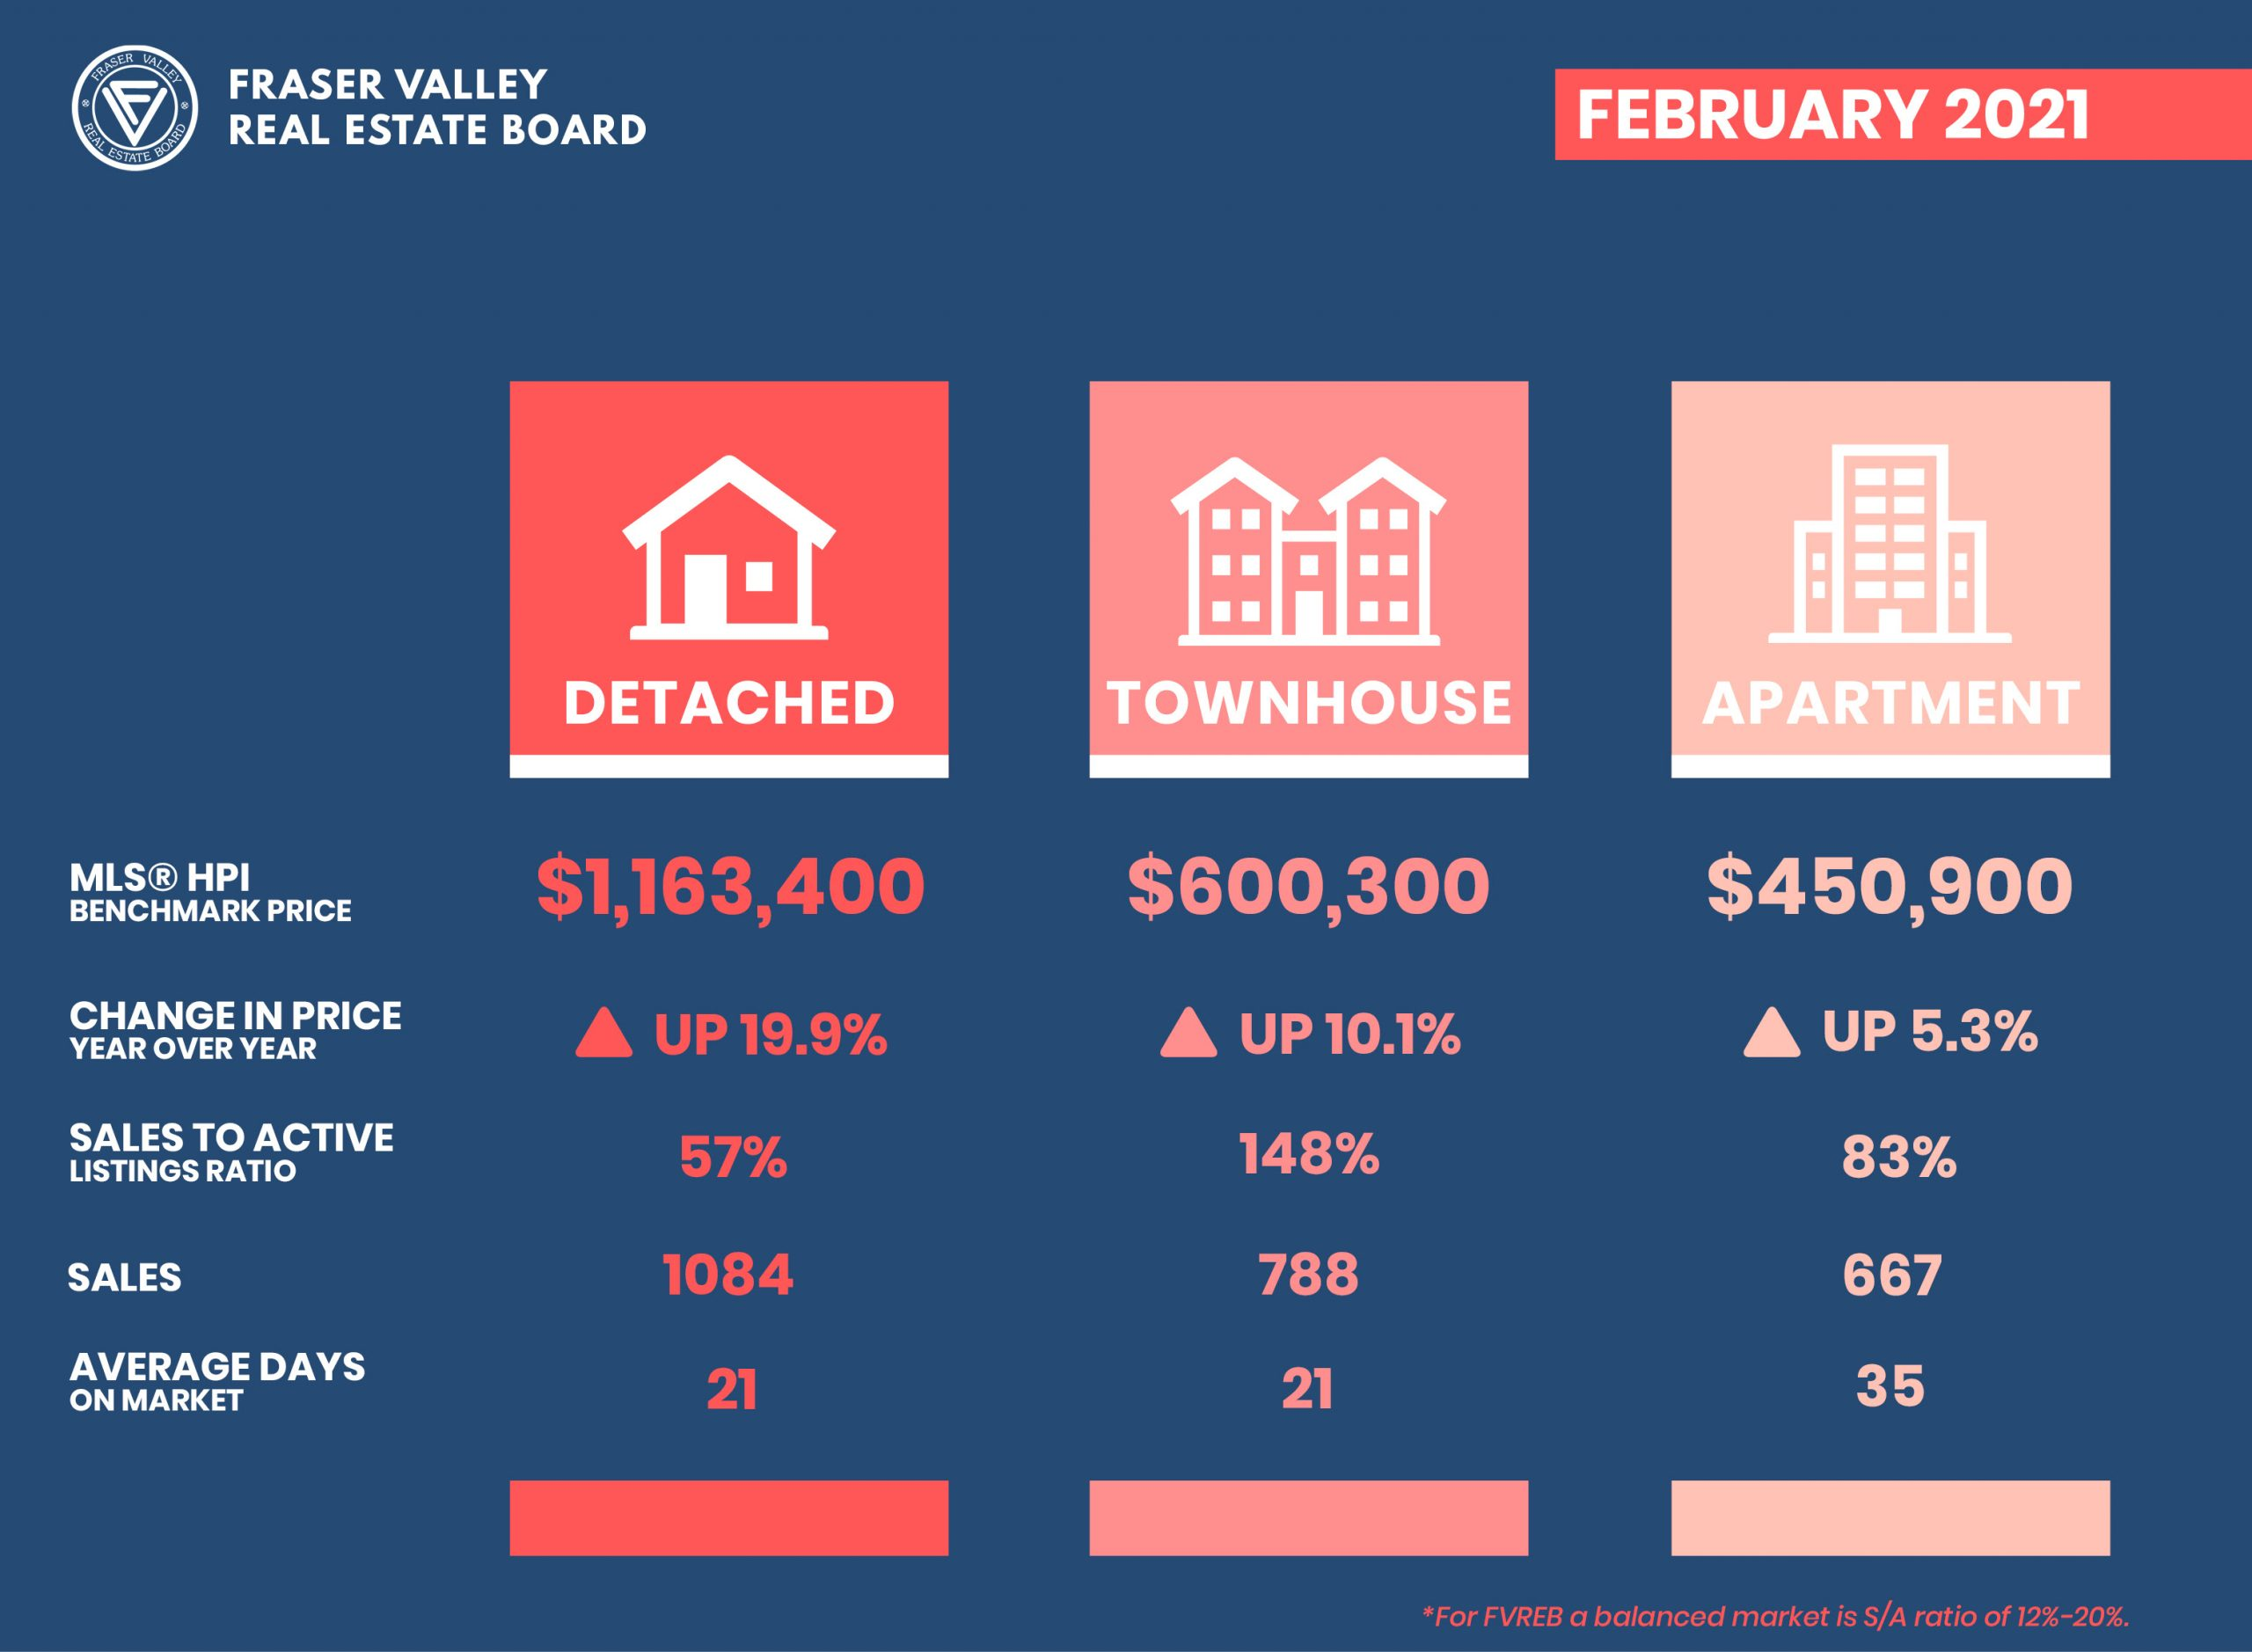 February 2021 real estate stats